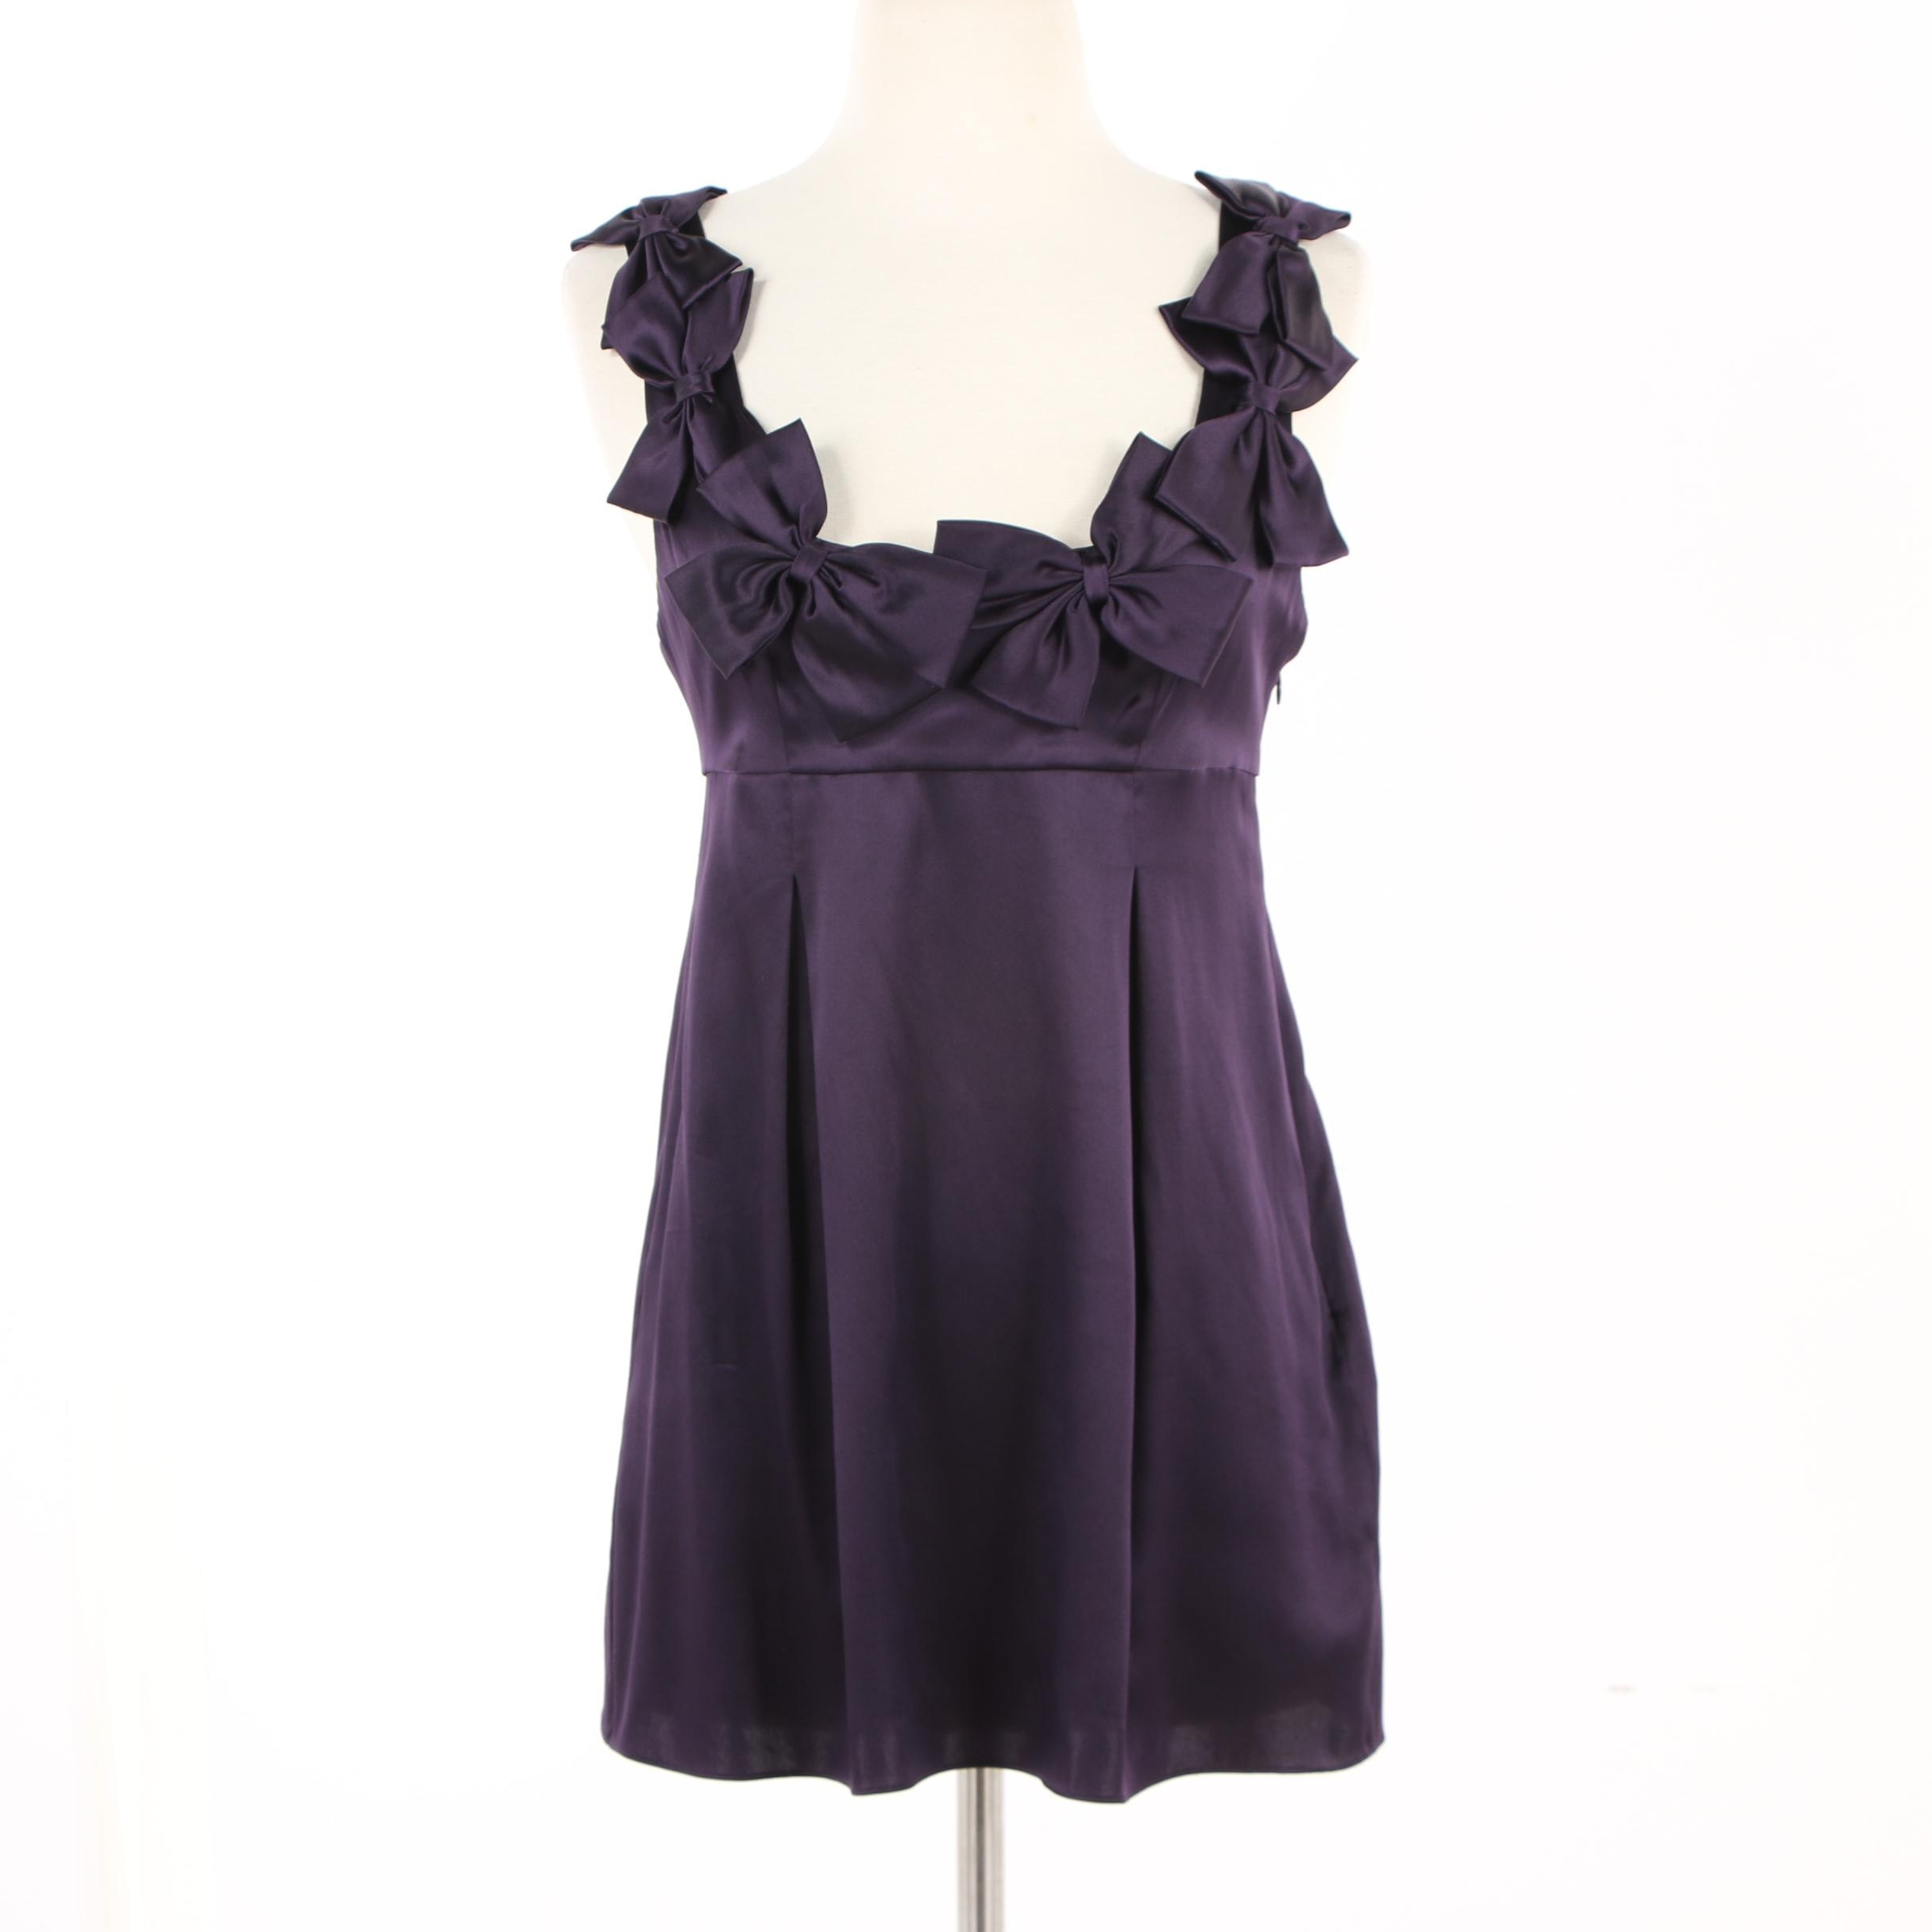 Rebecca Taylor Silk Sleeveless Top with Bow Accents in Eggplant